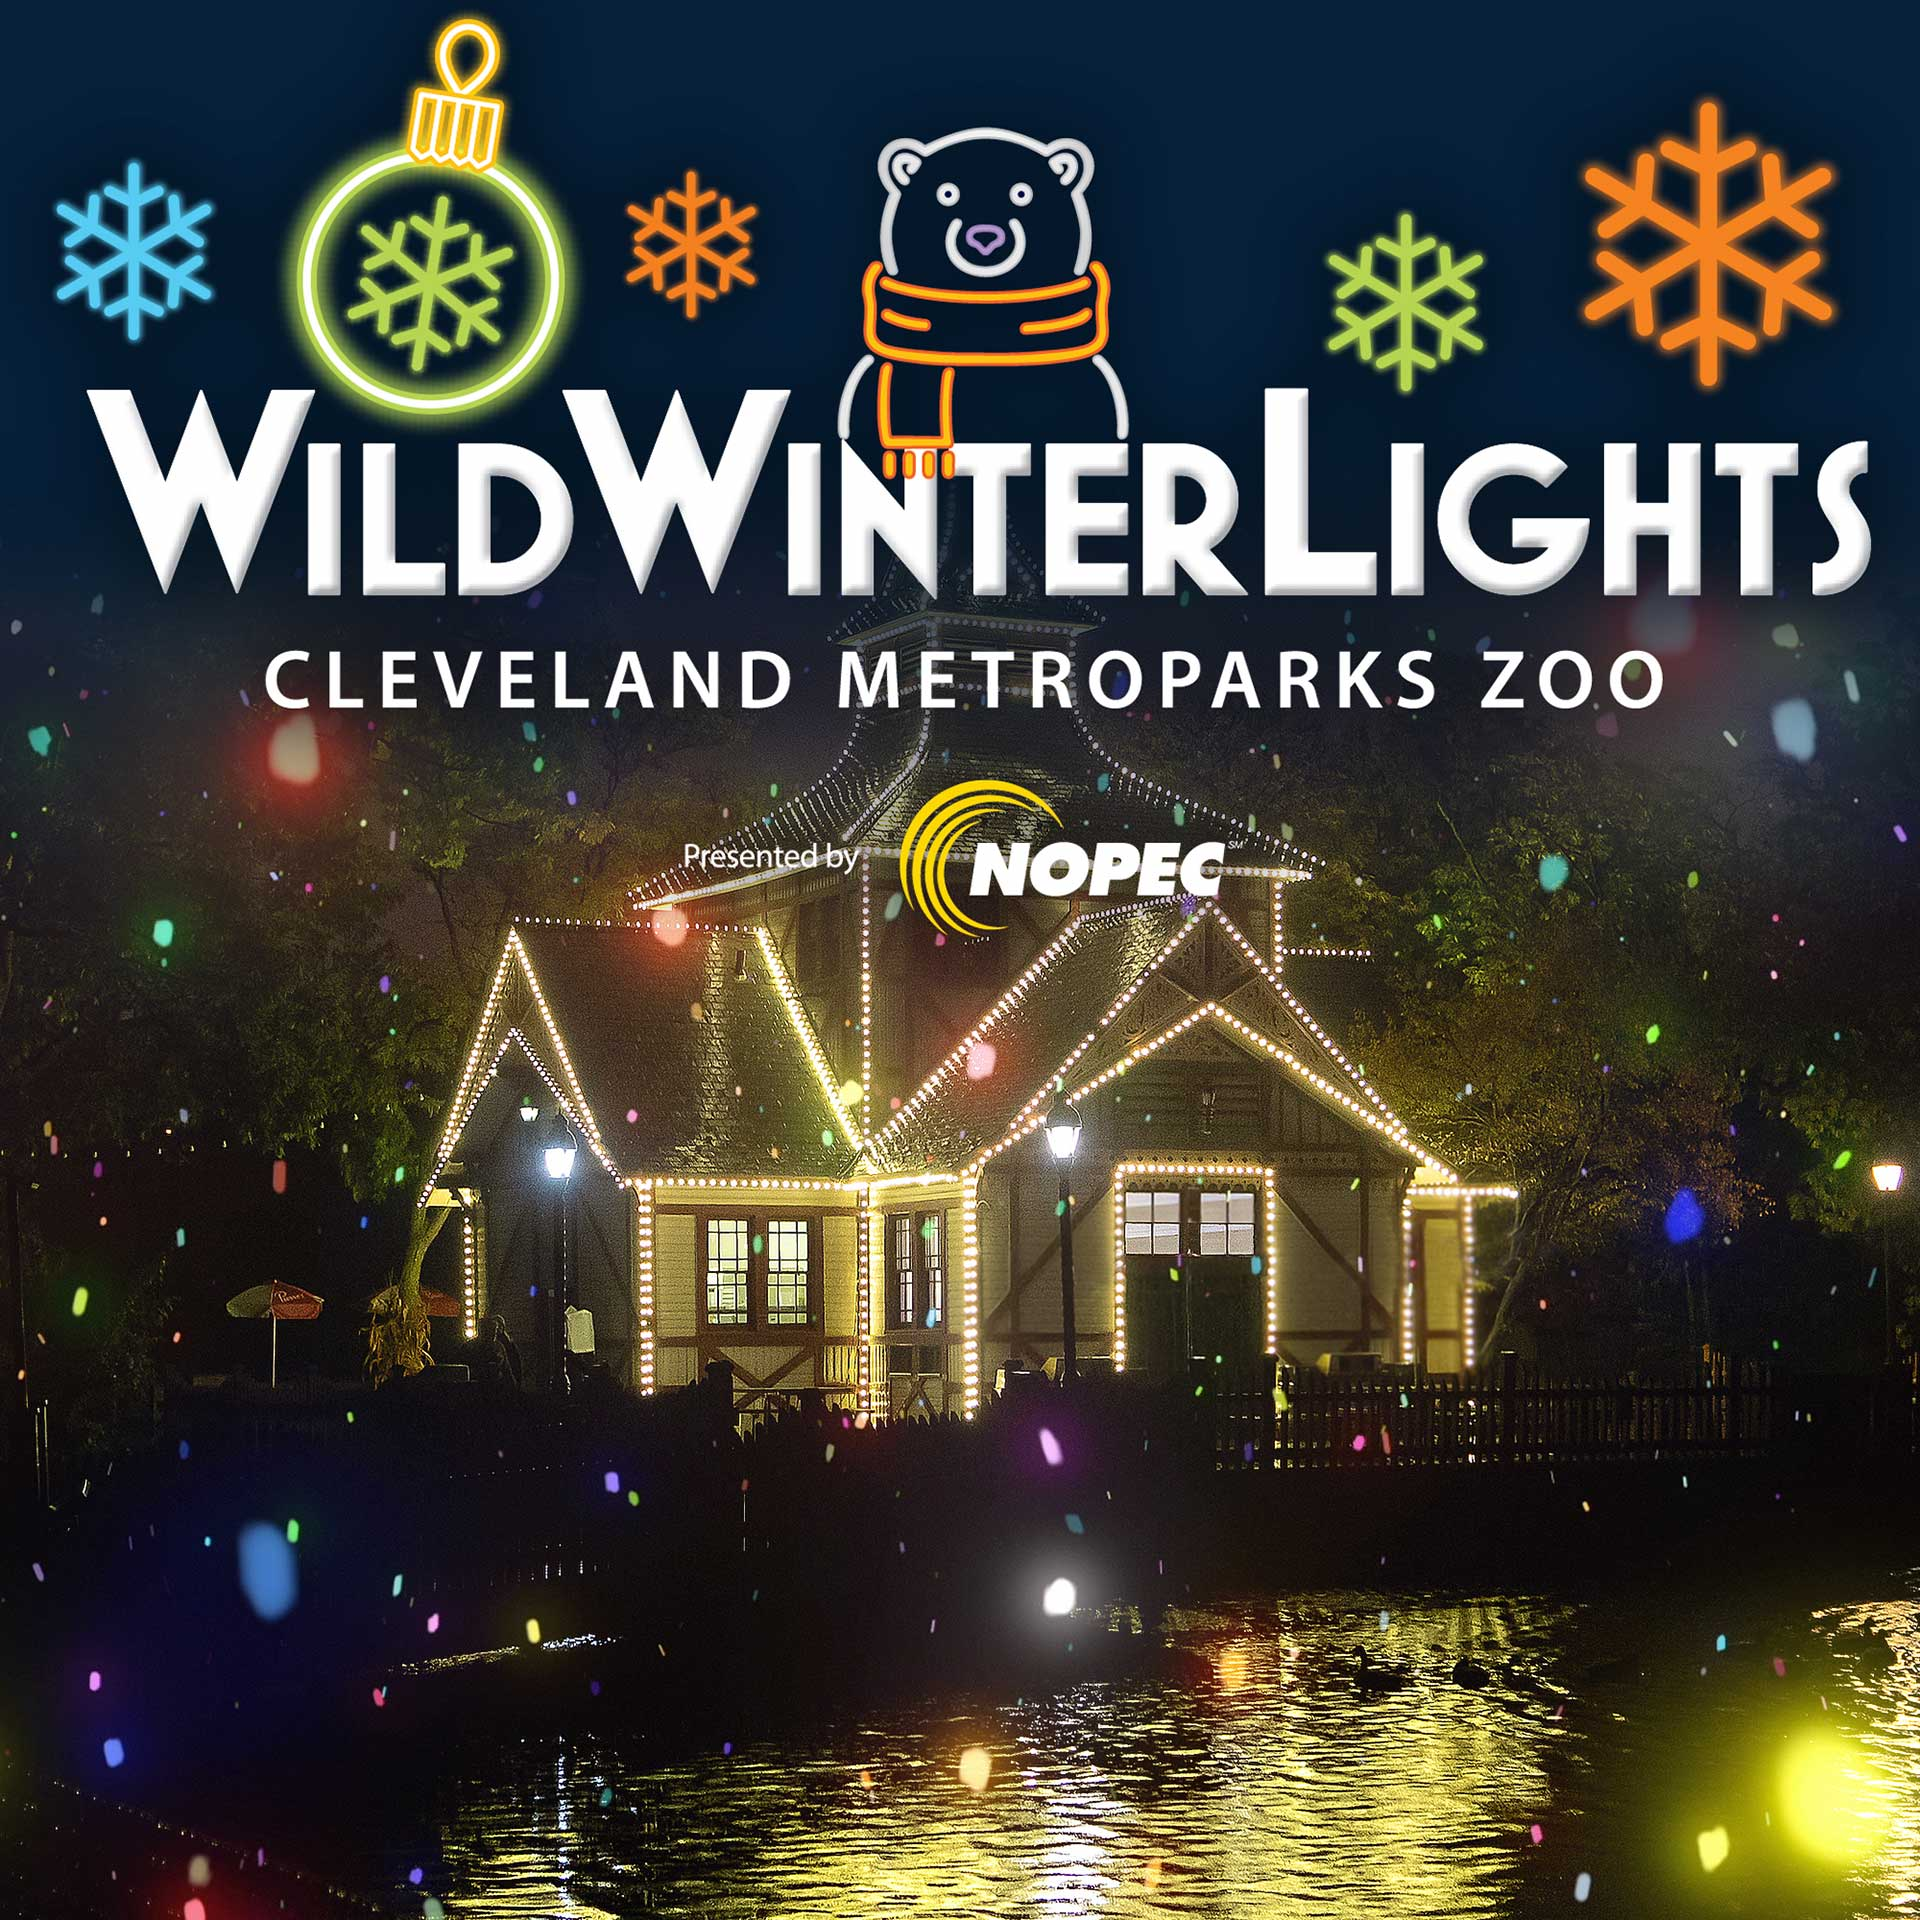 Cleveland Zoo Christmas 2020 Cleveland Metroparks Zoo Announces Wild Winter Lights | Cleveland